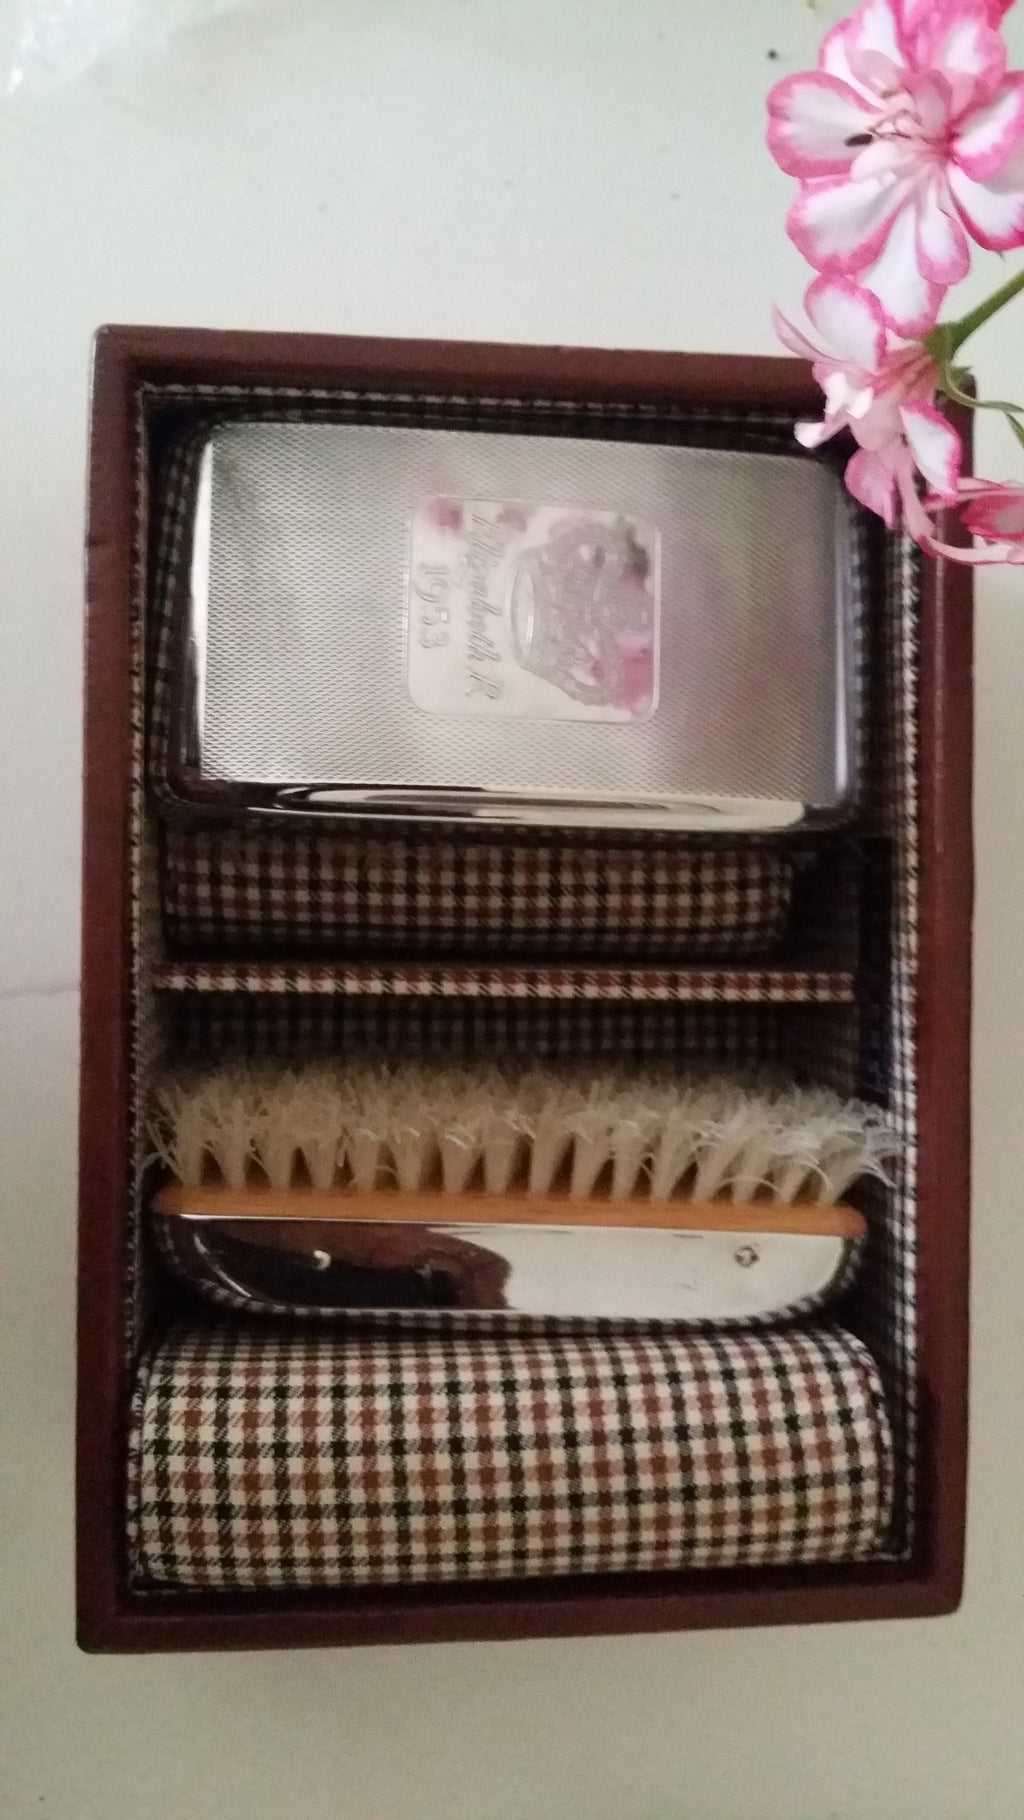 AUCTION!: Celebrating The Queens coronation clothes brushes